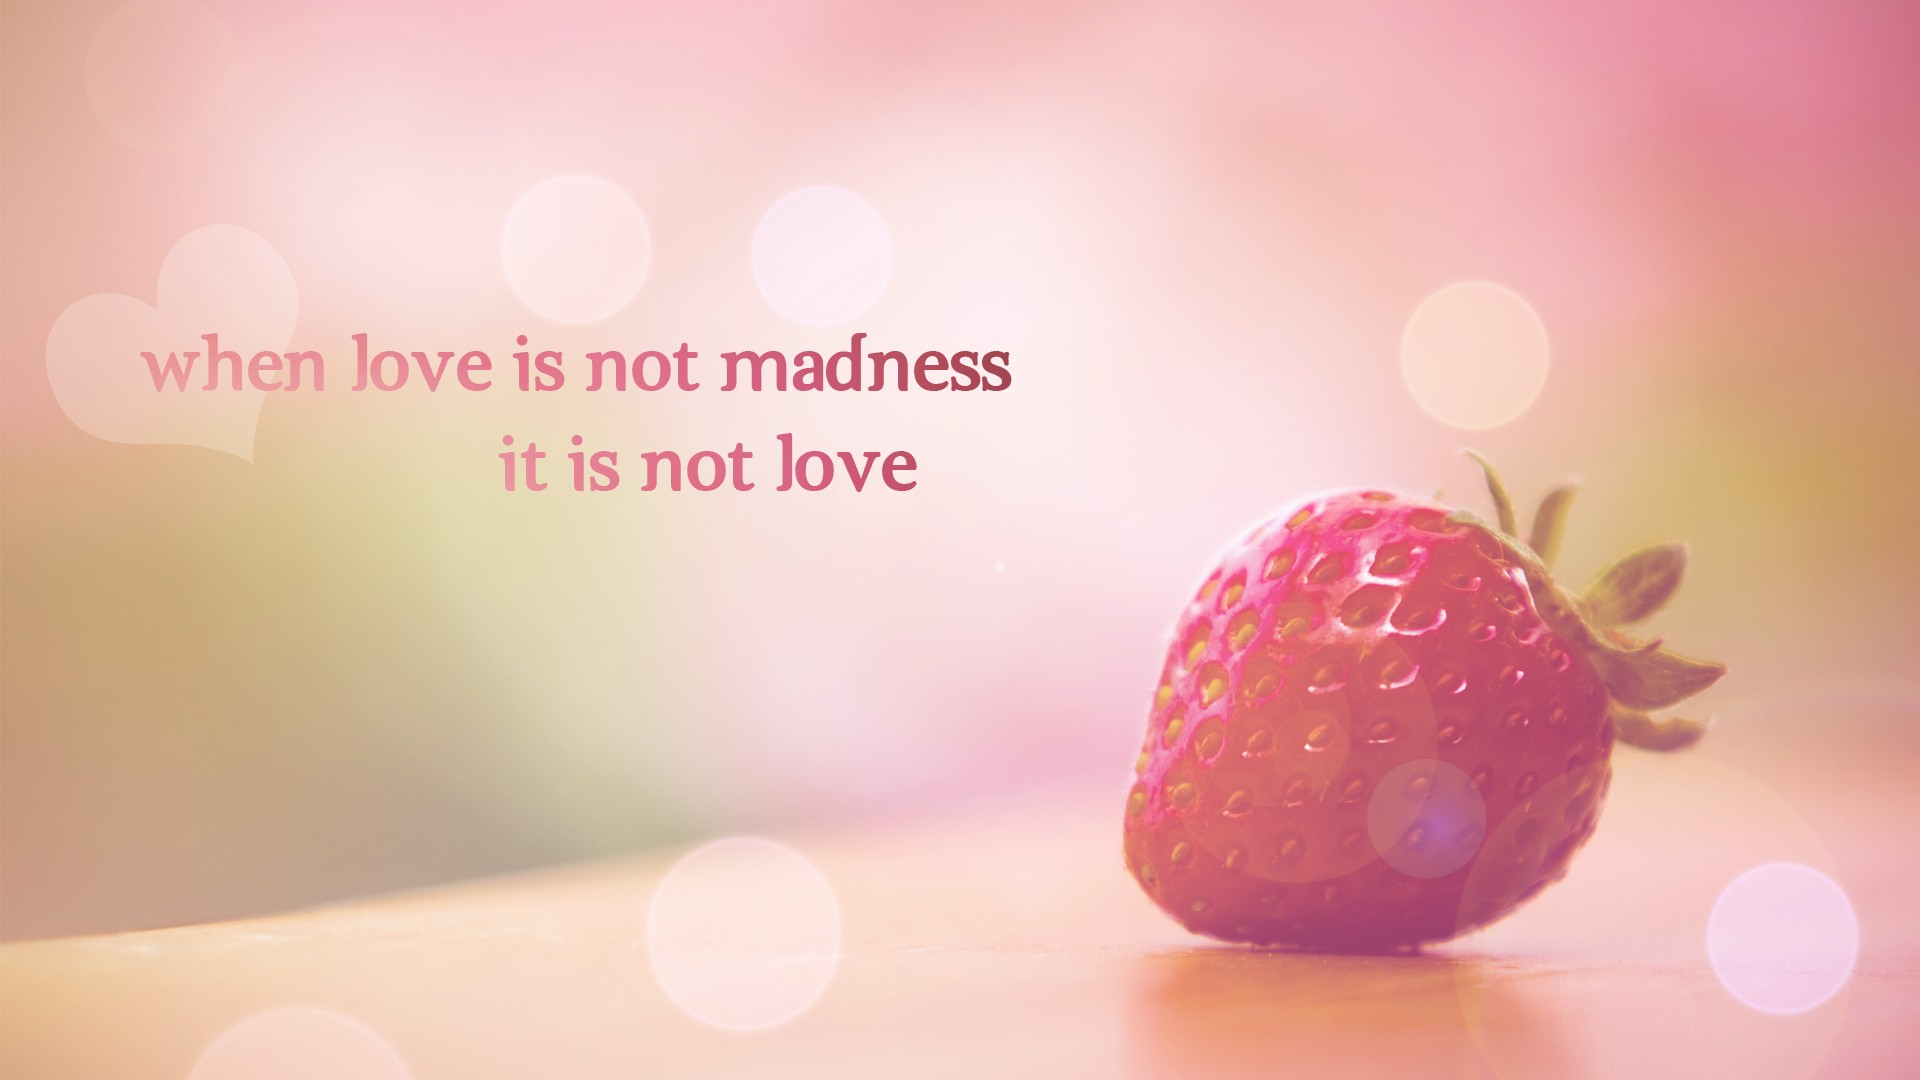 Love Quotes Wallpaper - Wallpaper, High Definition, High Quality ...